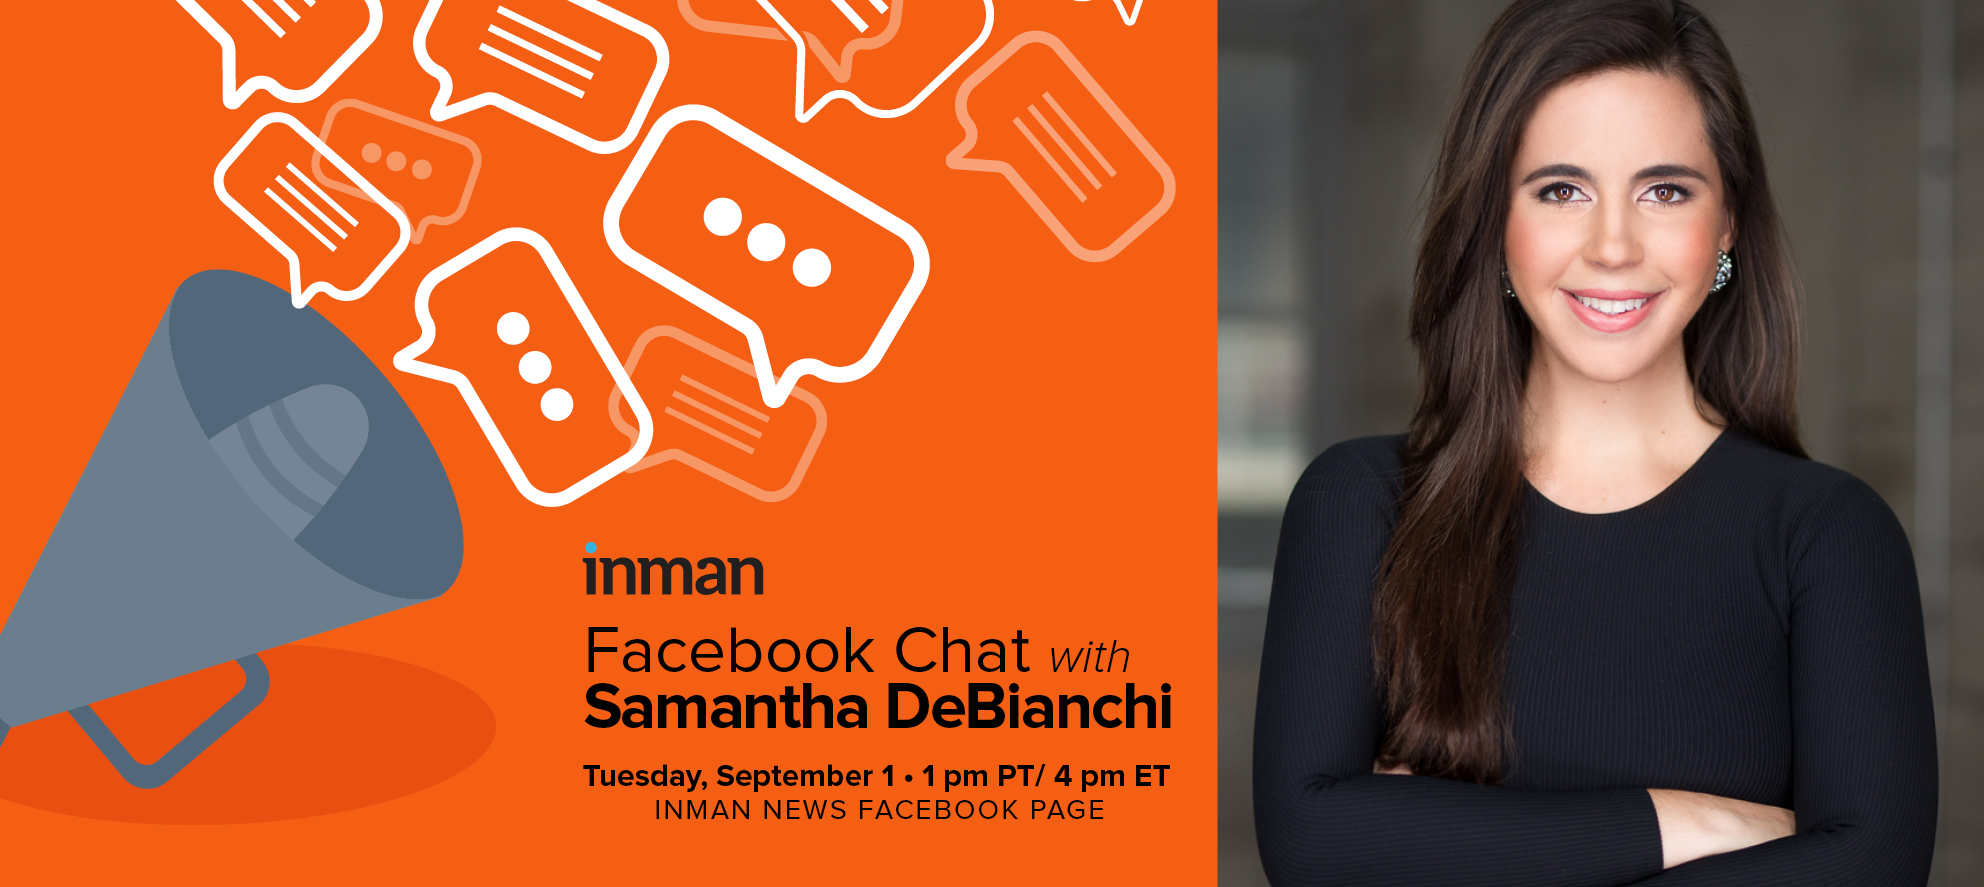 Highlights from chat with Samantha DeBianchi of 'Million Dollar Listing Miami'